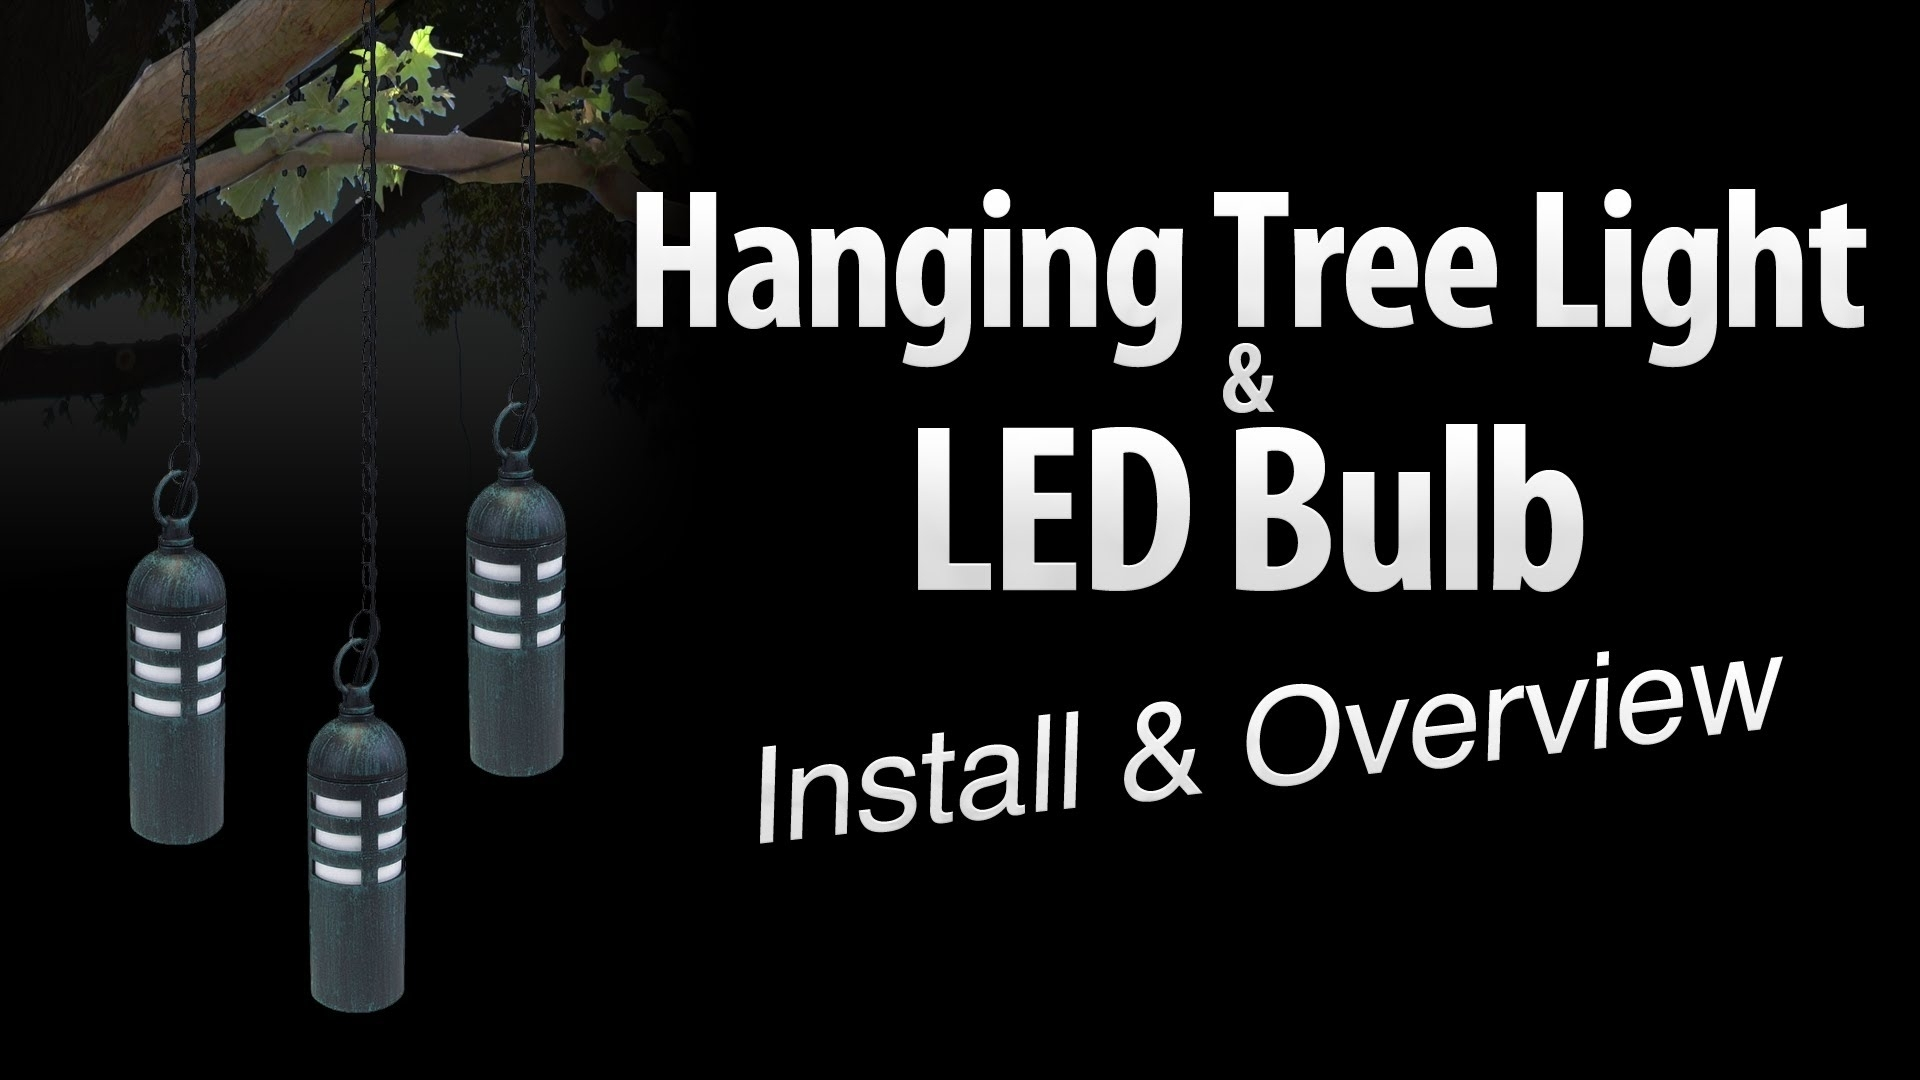 Hanging Tree Light & Led Light Bulb Install & Overviewtotal Within Outdoor Hanging Lanterns For Trees (View 3 of 15)